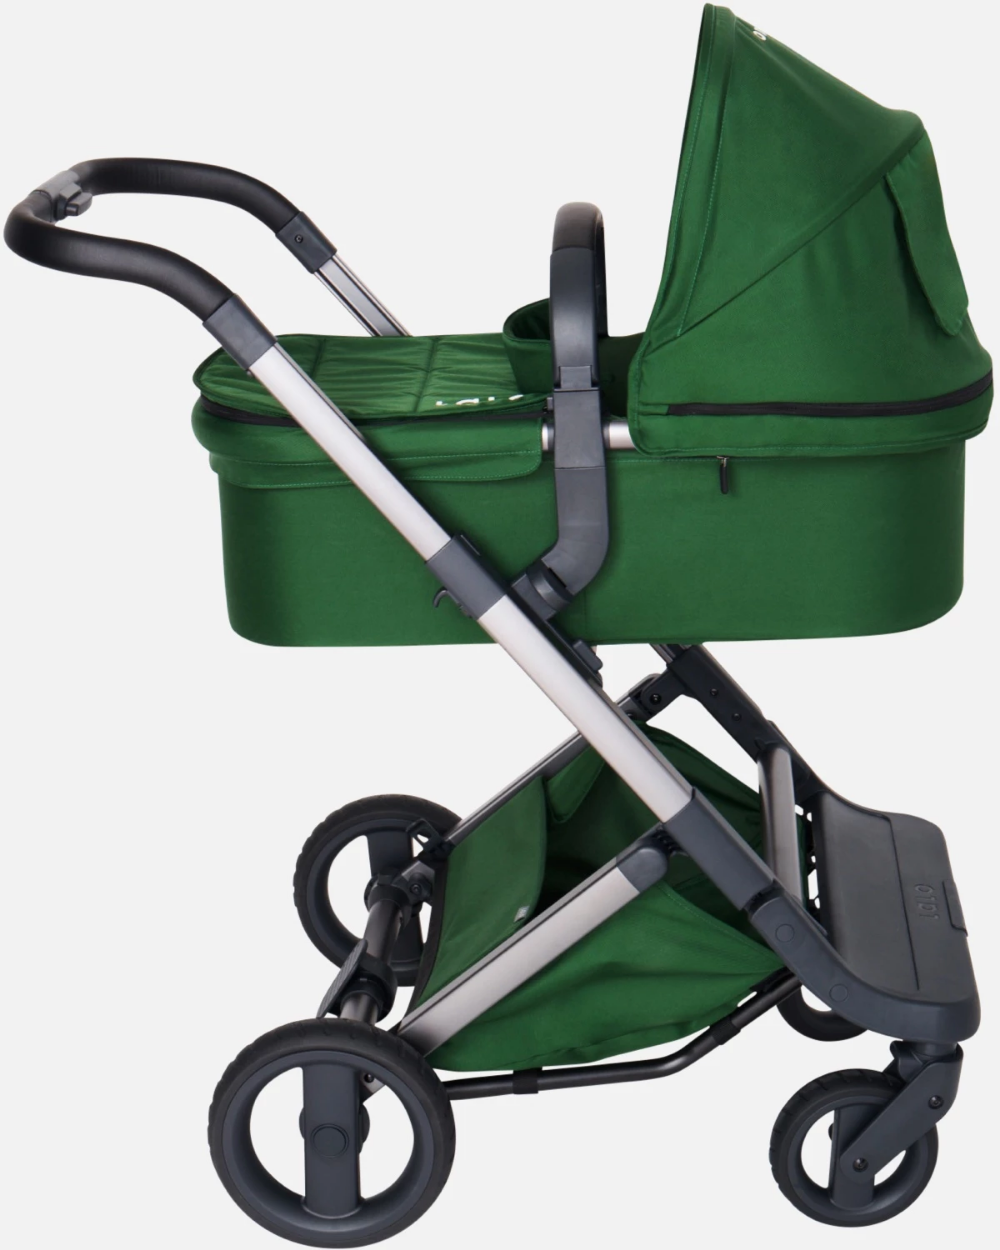 The Daily Car seats, Baby strollers, Sun canopy